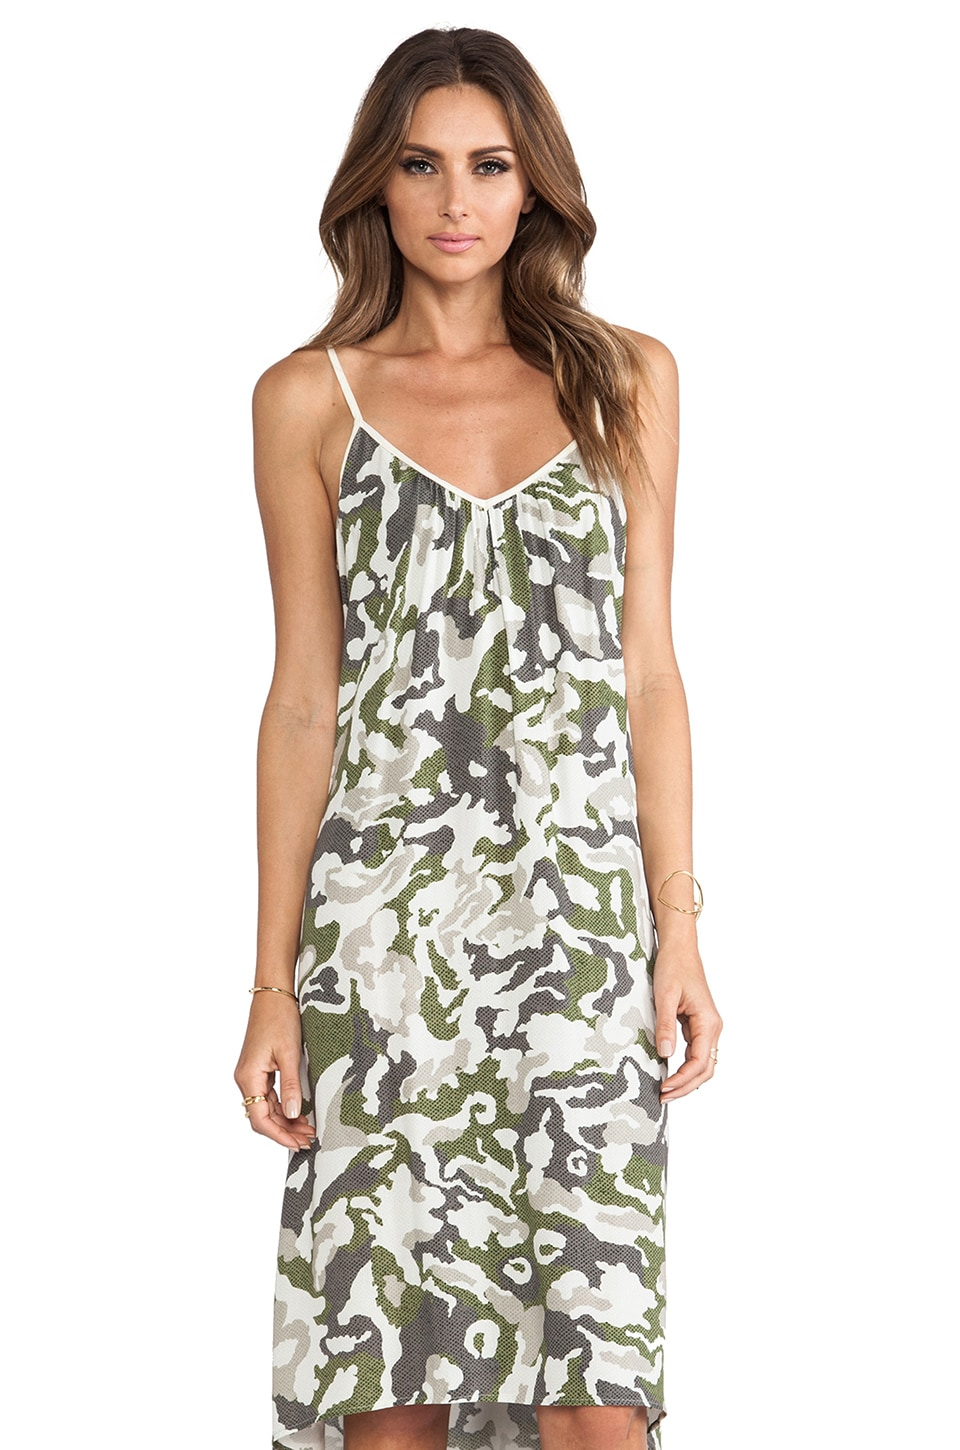 SAM&LAVI Chloe Dress in Camo Amo